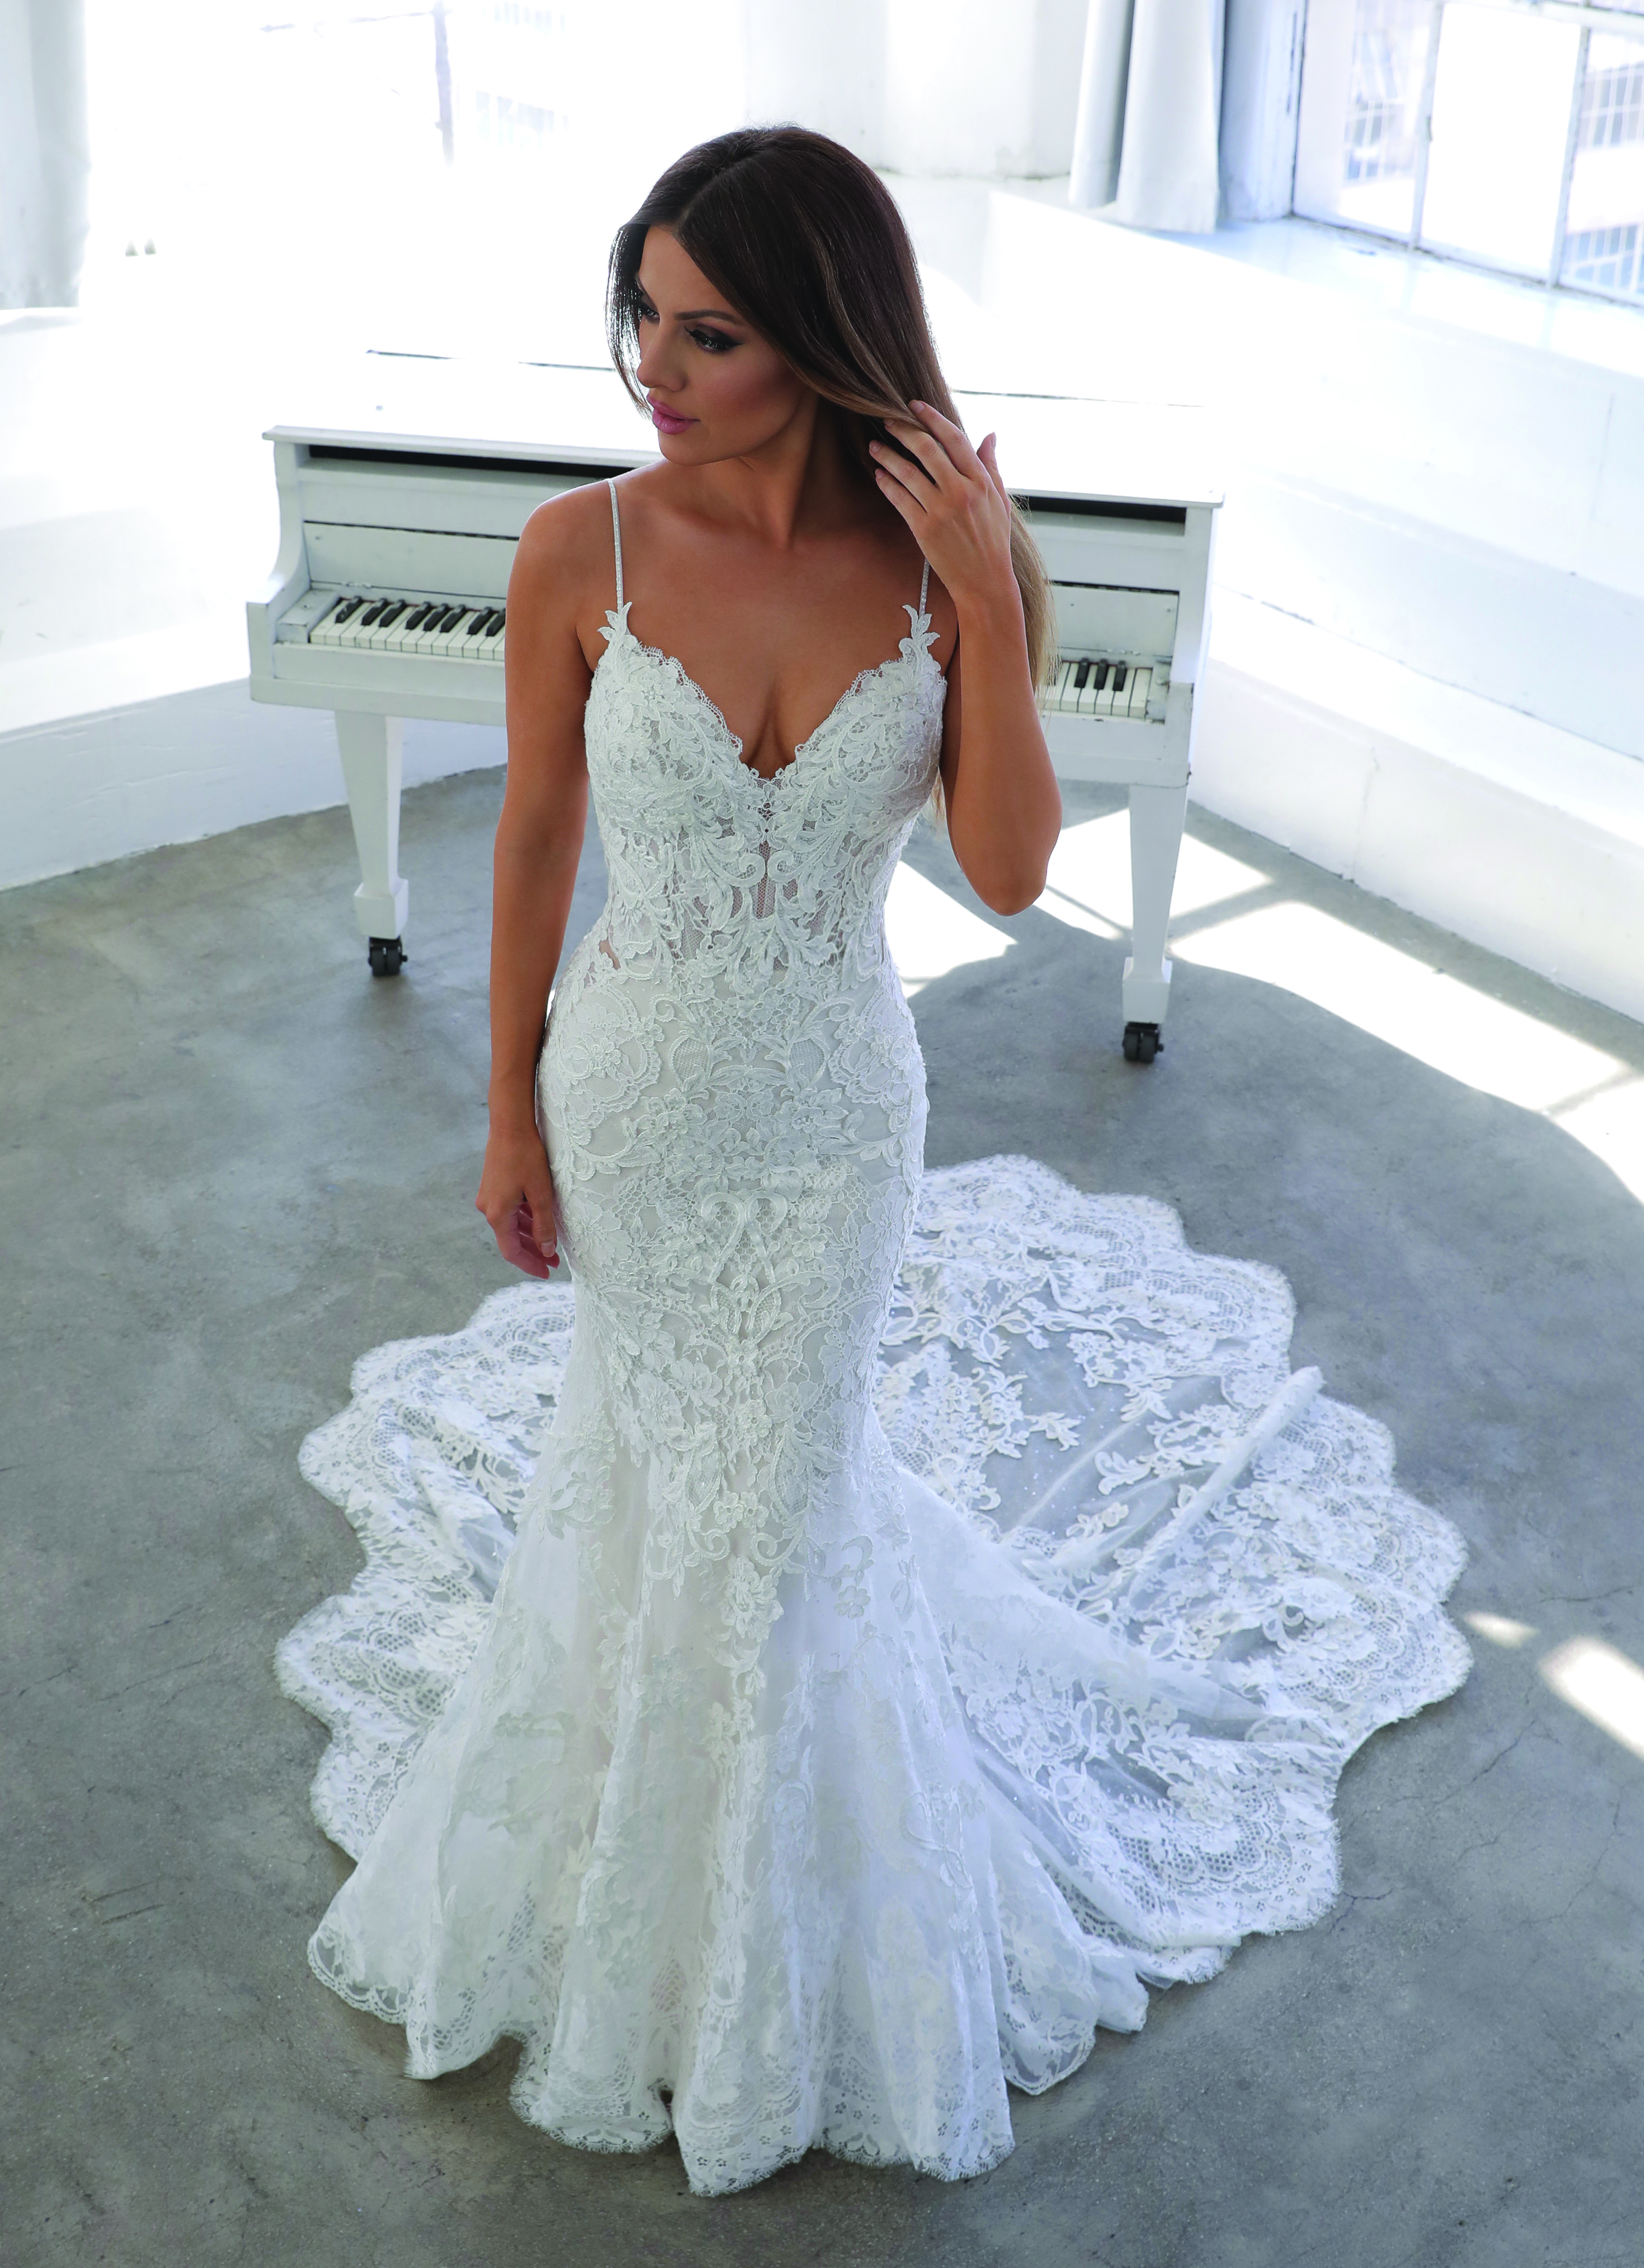 Parvani Vida Bridal and Formal - Wedding Dresses